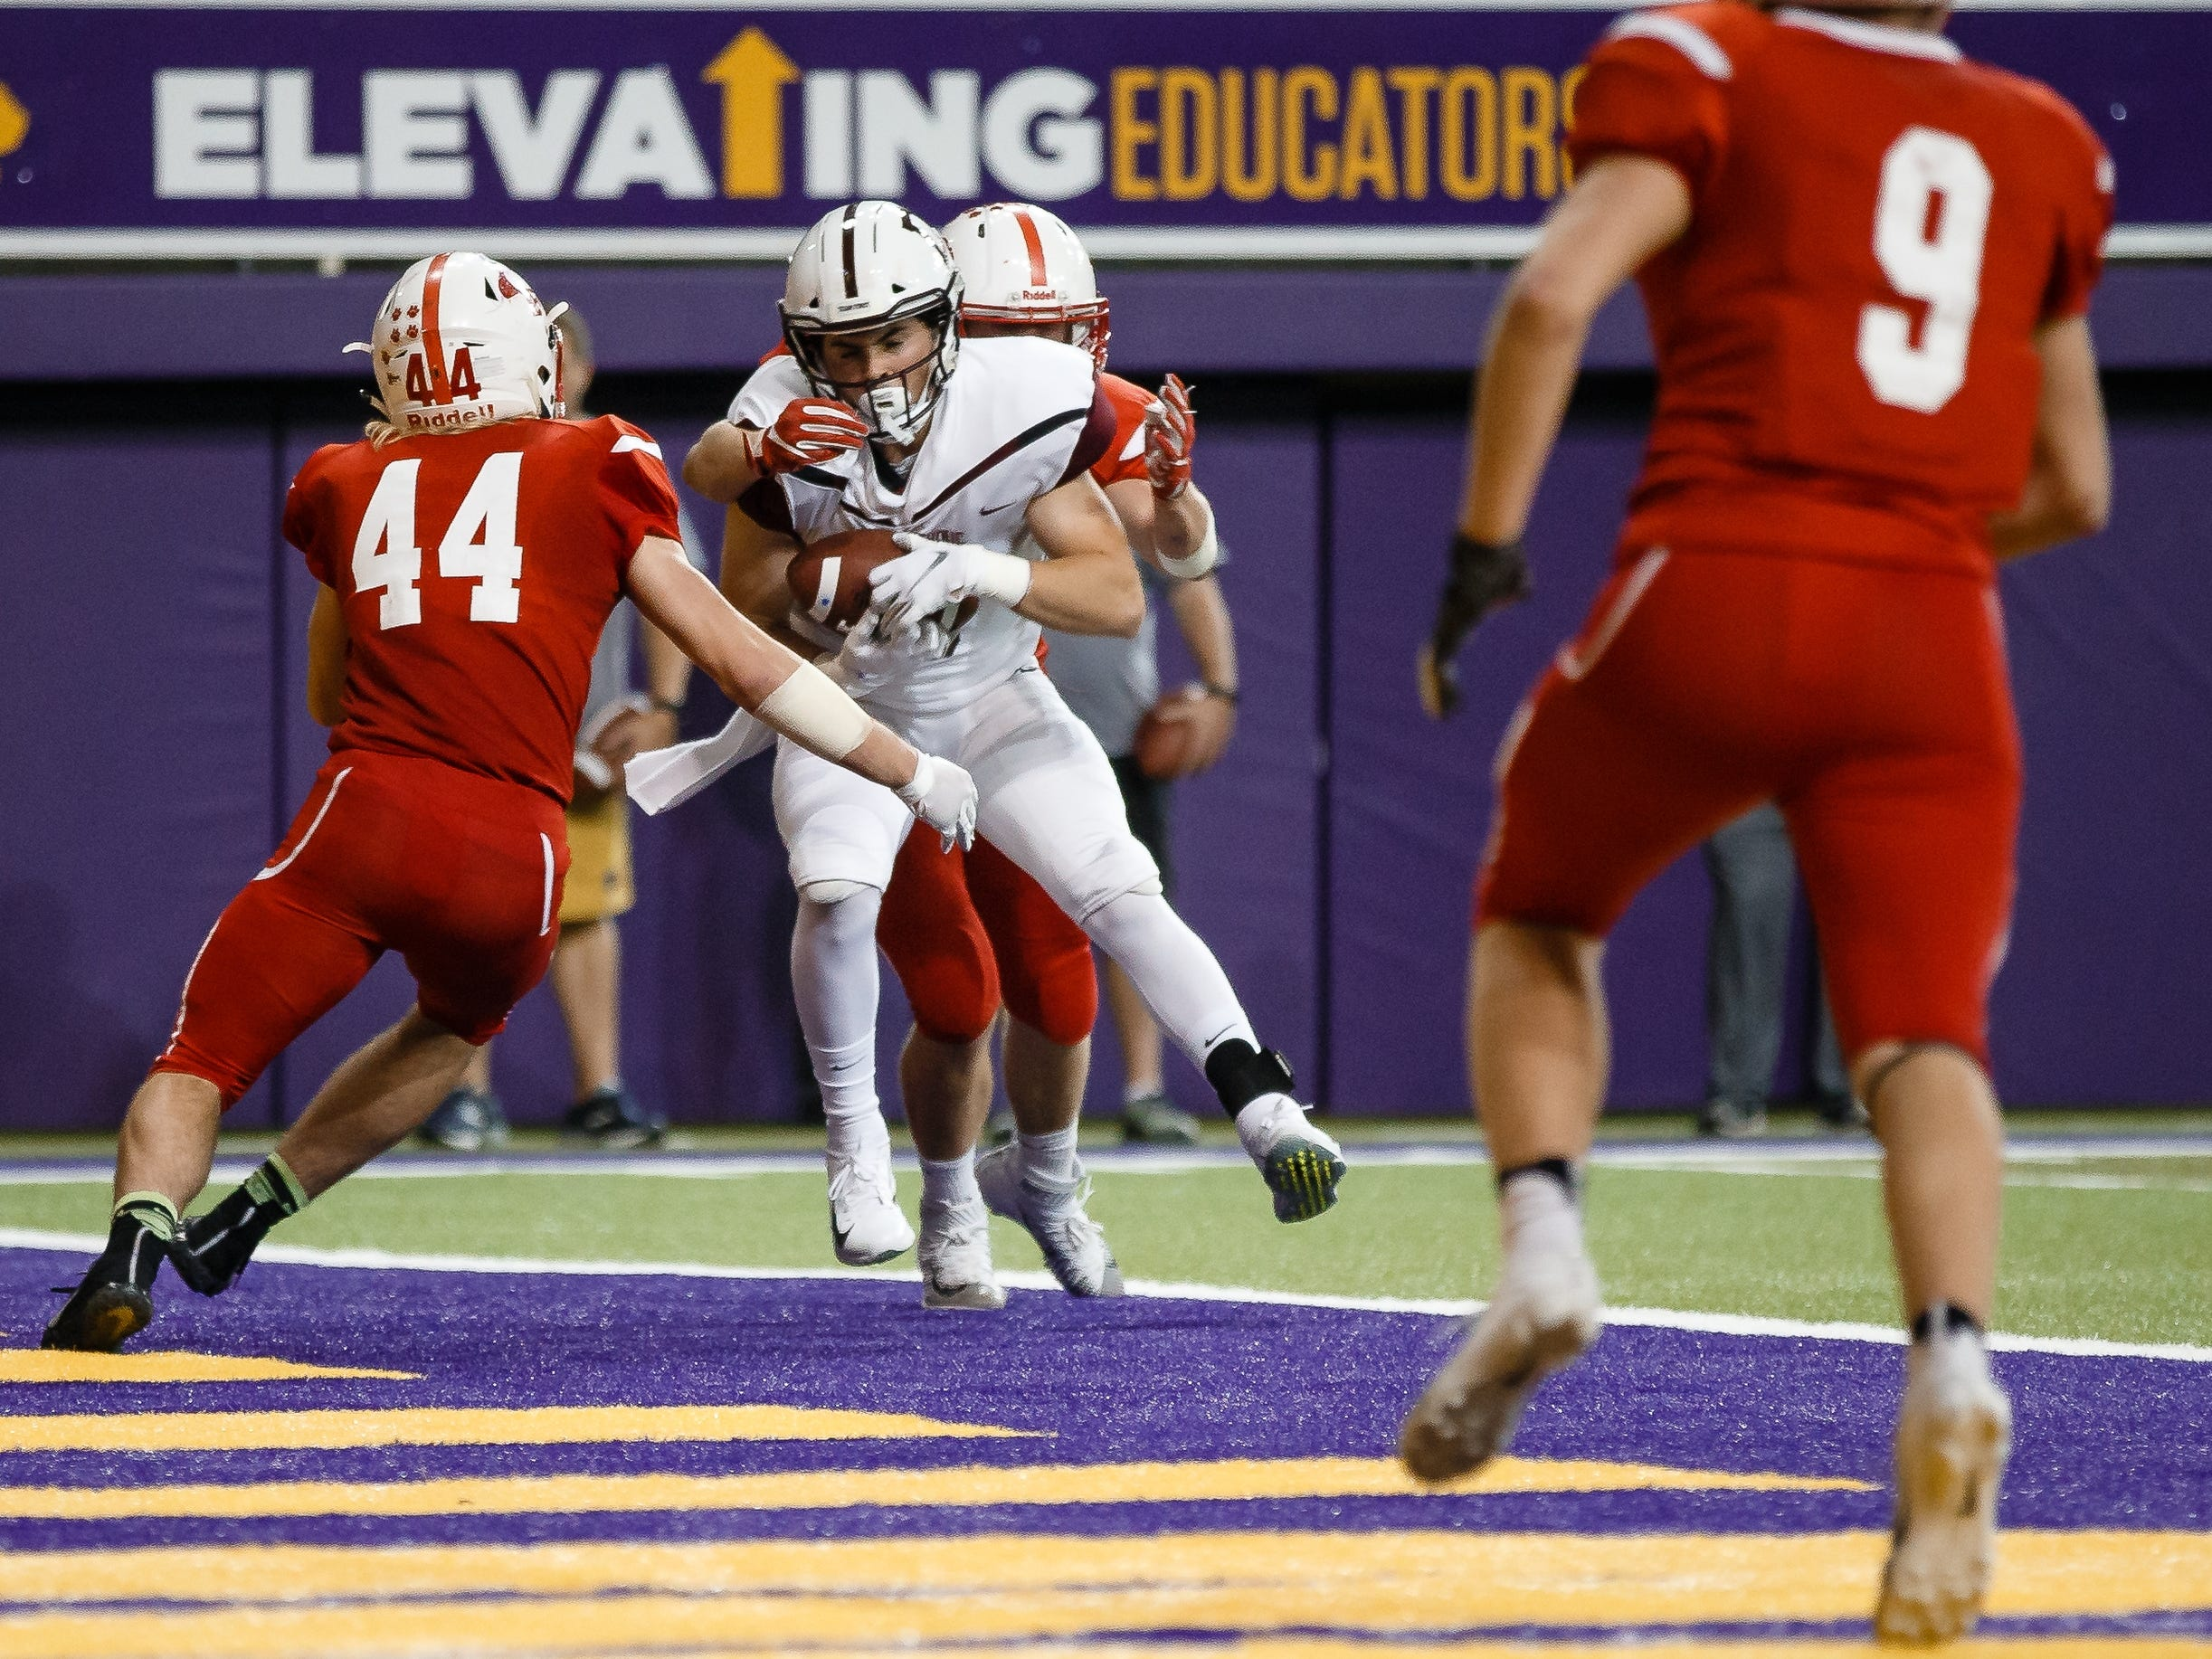 Dowling Catholic's Collin Cook (5) catches a ball in the end zone for a two point conversion making the score 22-16 during their class 4A state championship football game on Friday, Nov. 16, 2018, in Cedar Falls. Dowling Catholic would go on to defeat Cedar Falls 22-16 and win their sixth state title.